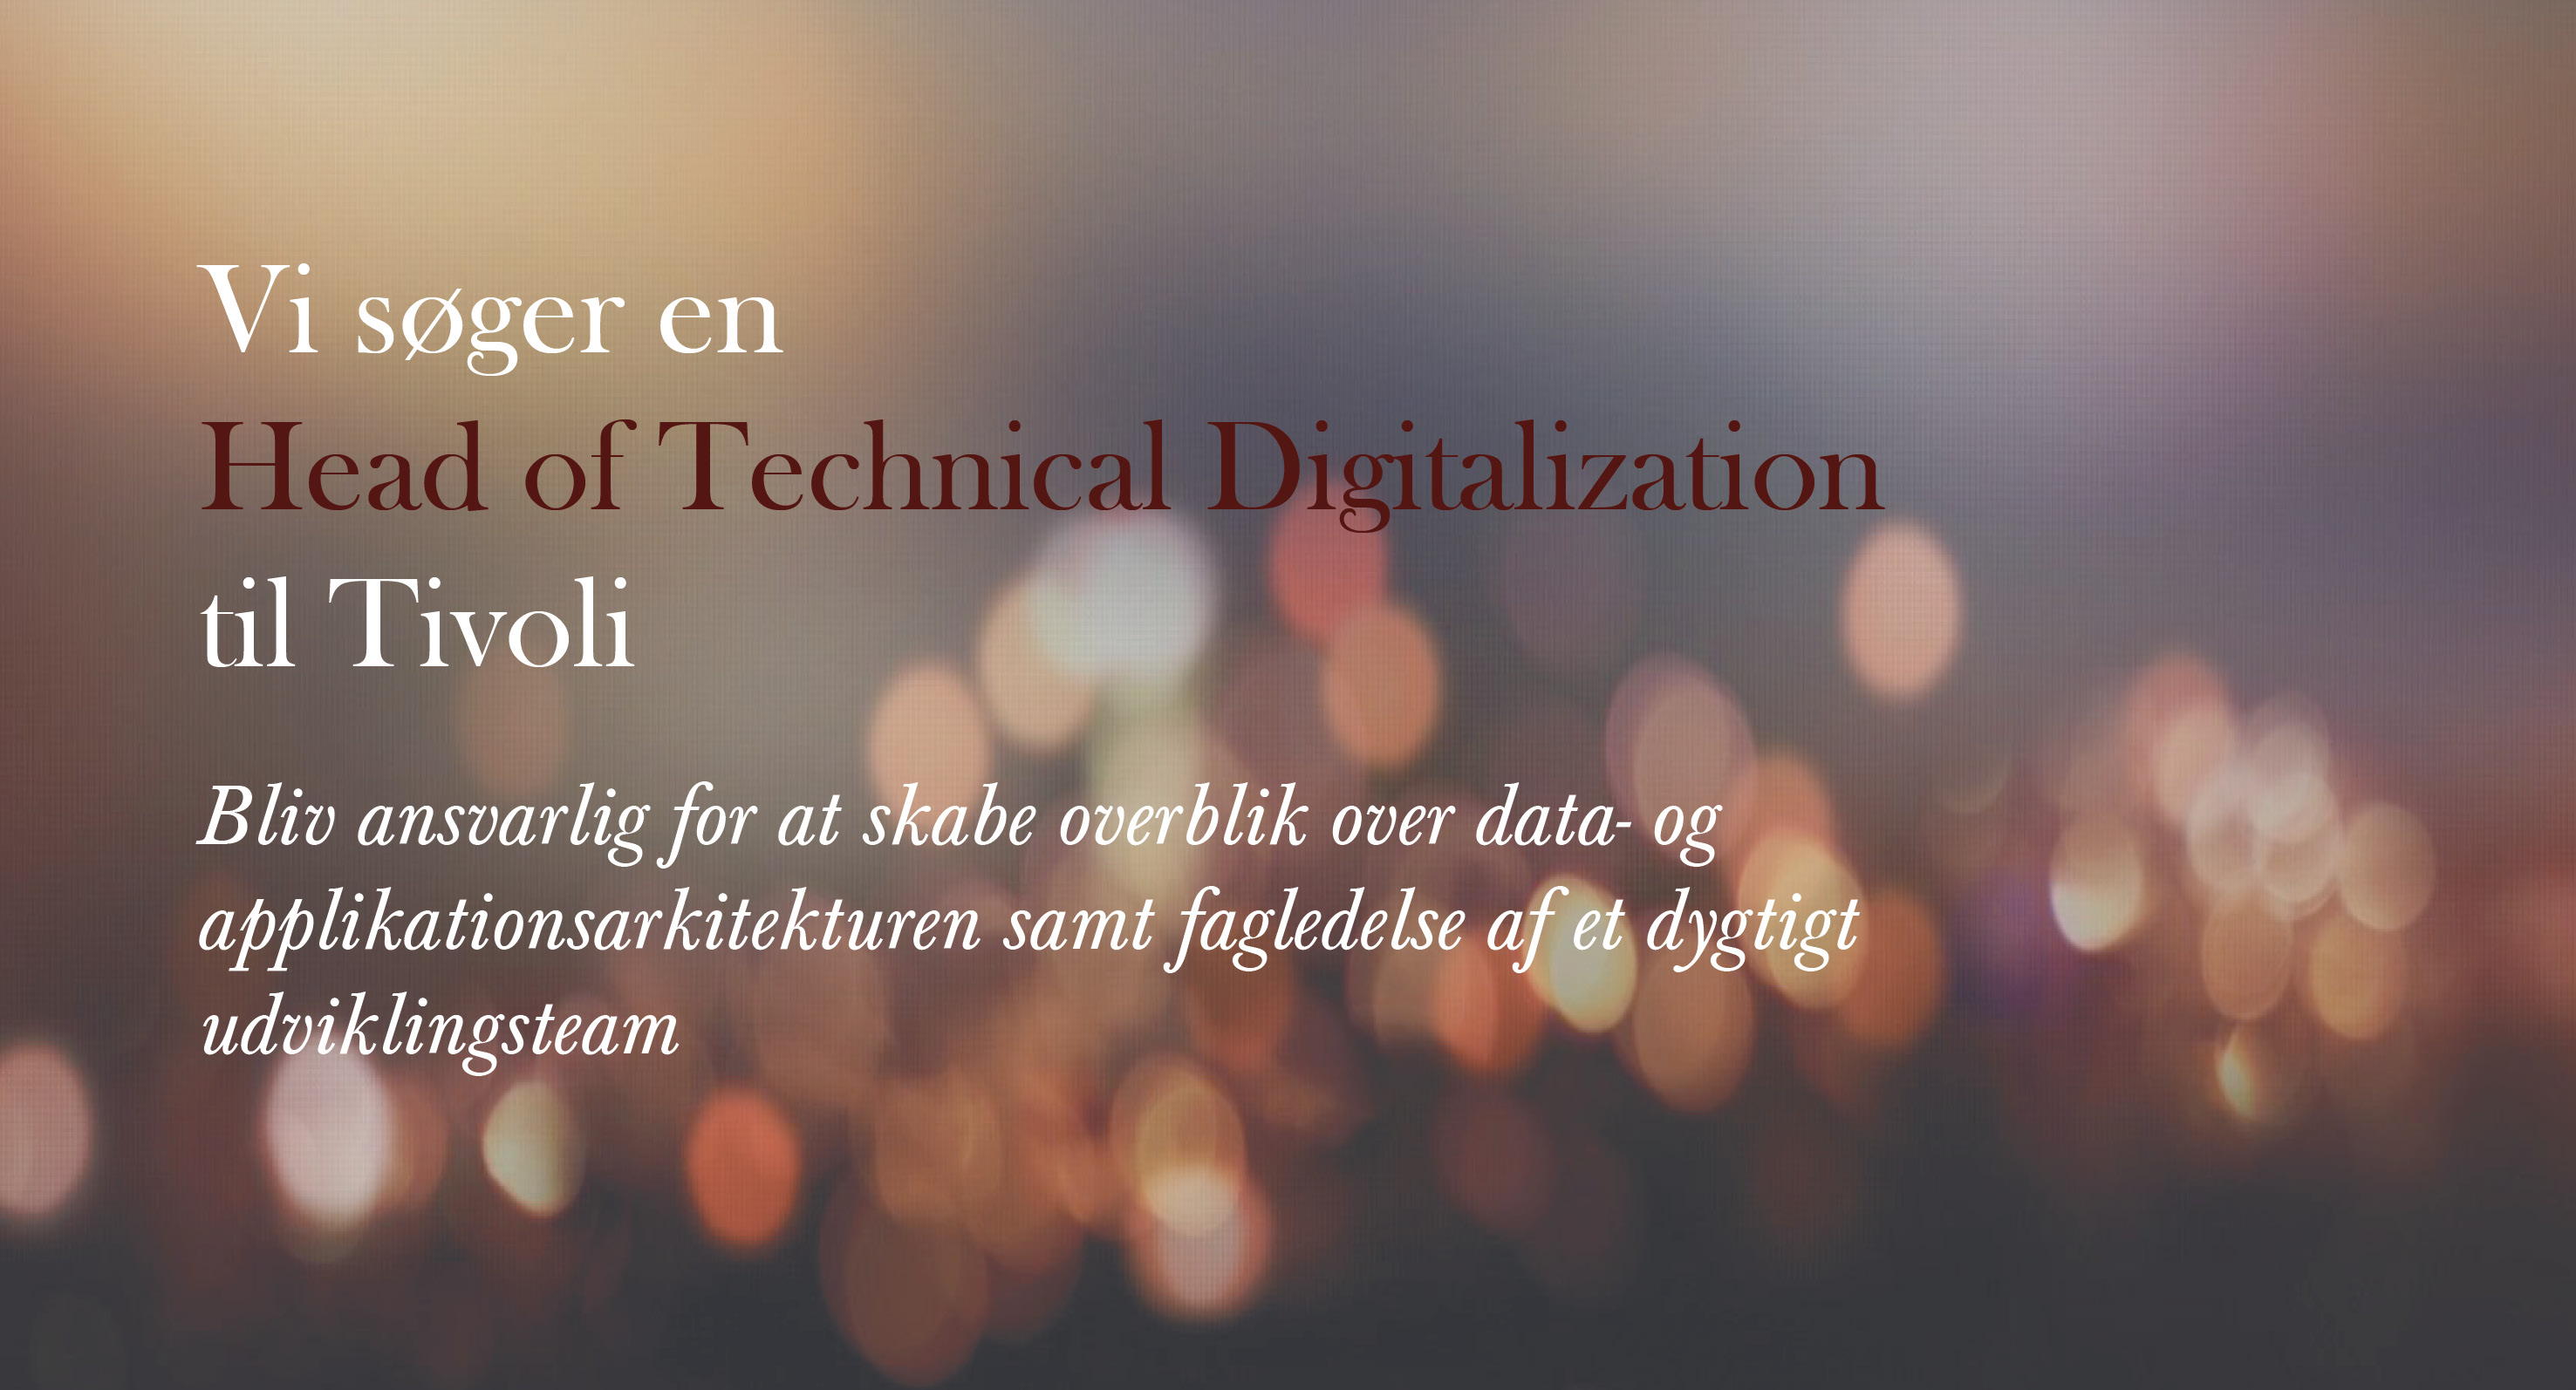 Head of tech. digital. - Tivoli